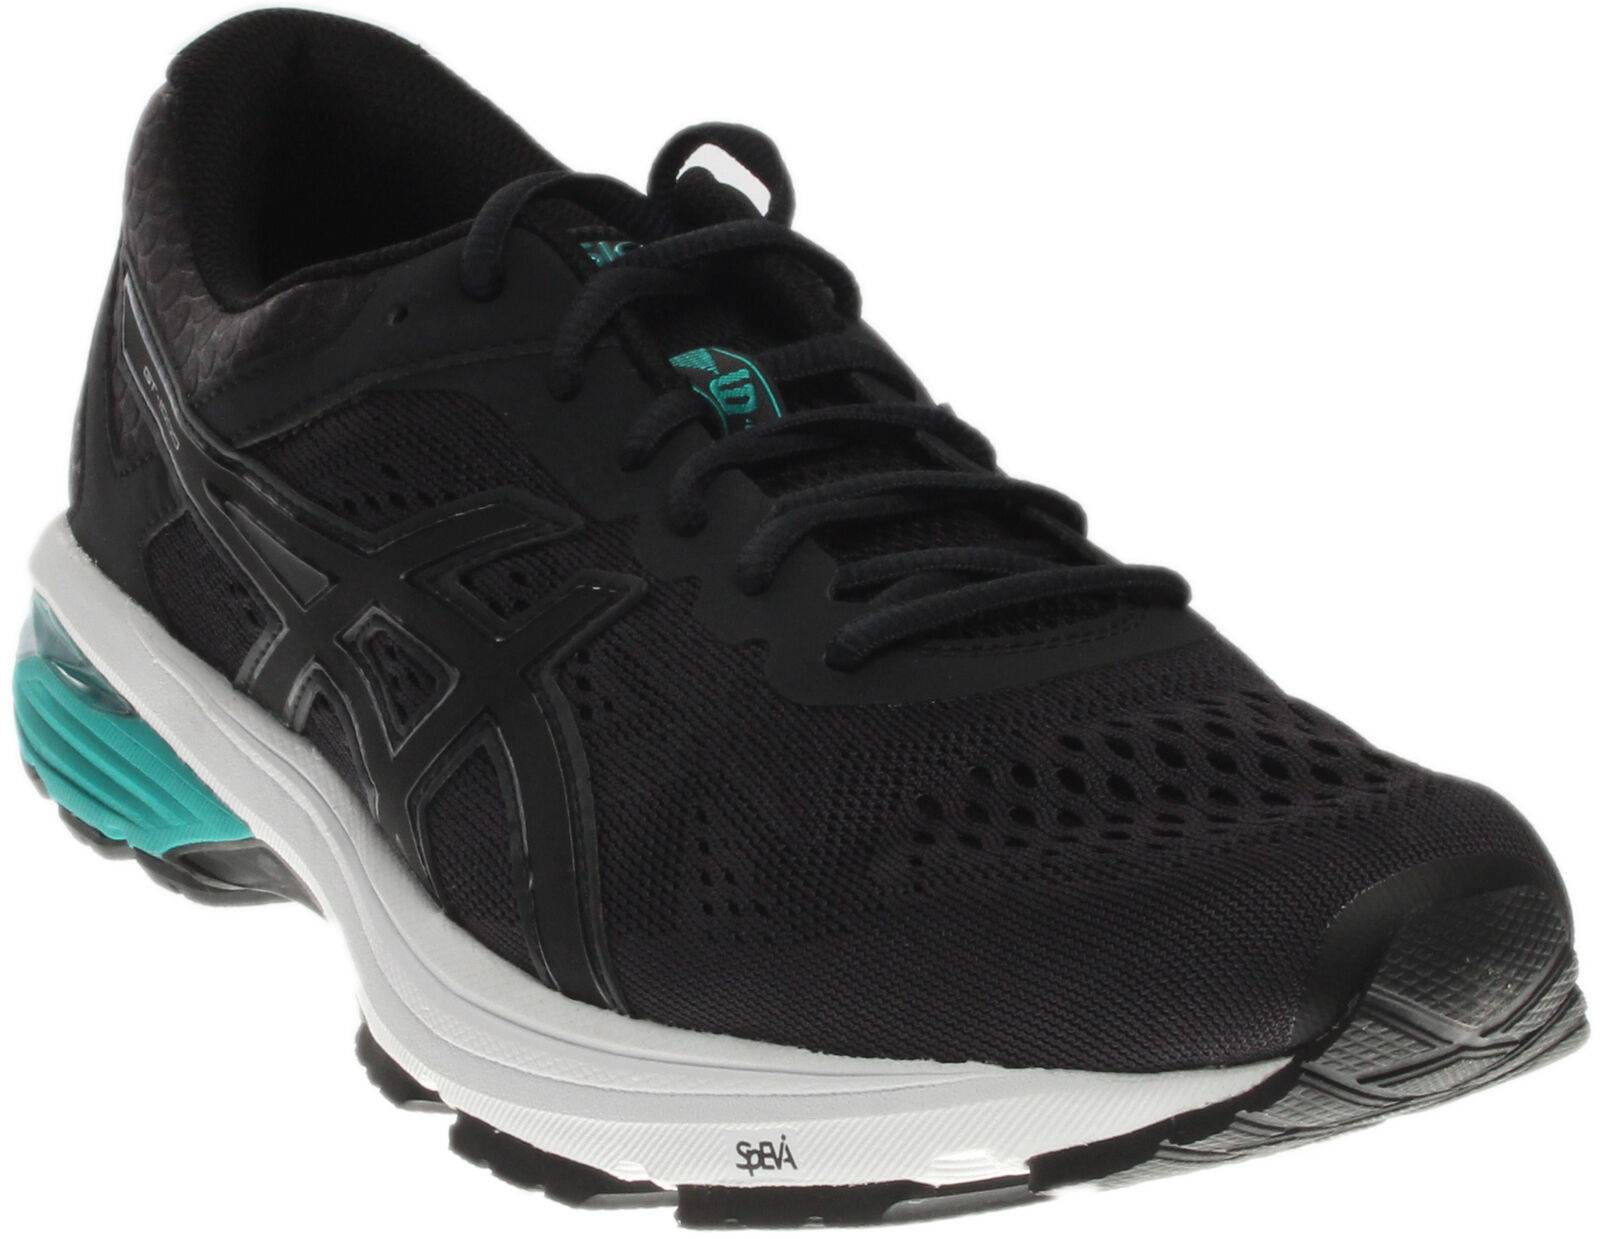 6bbe50691bc7 ASICS Mens Gt-1000 6 Running-shoes Phantom black peacoat US 9 M for ...